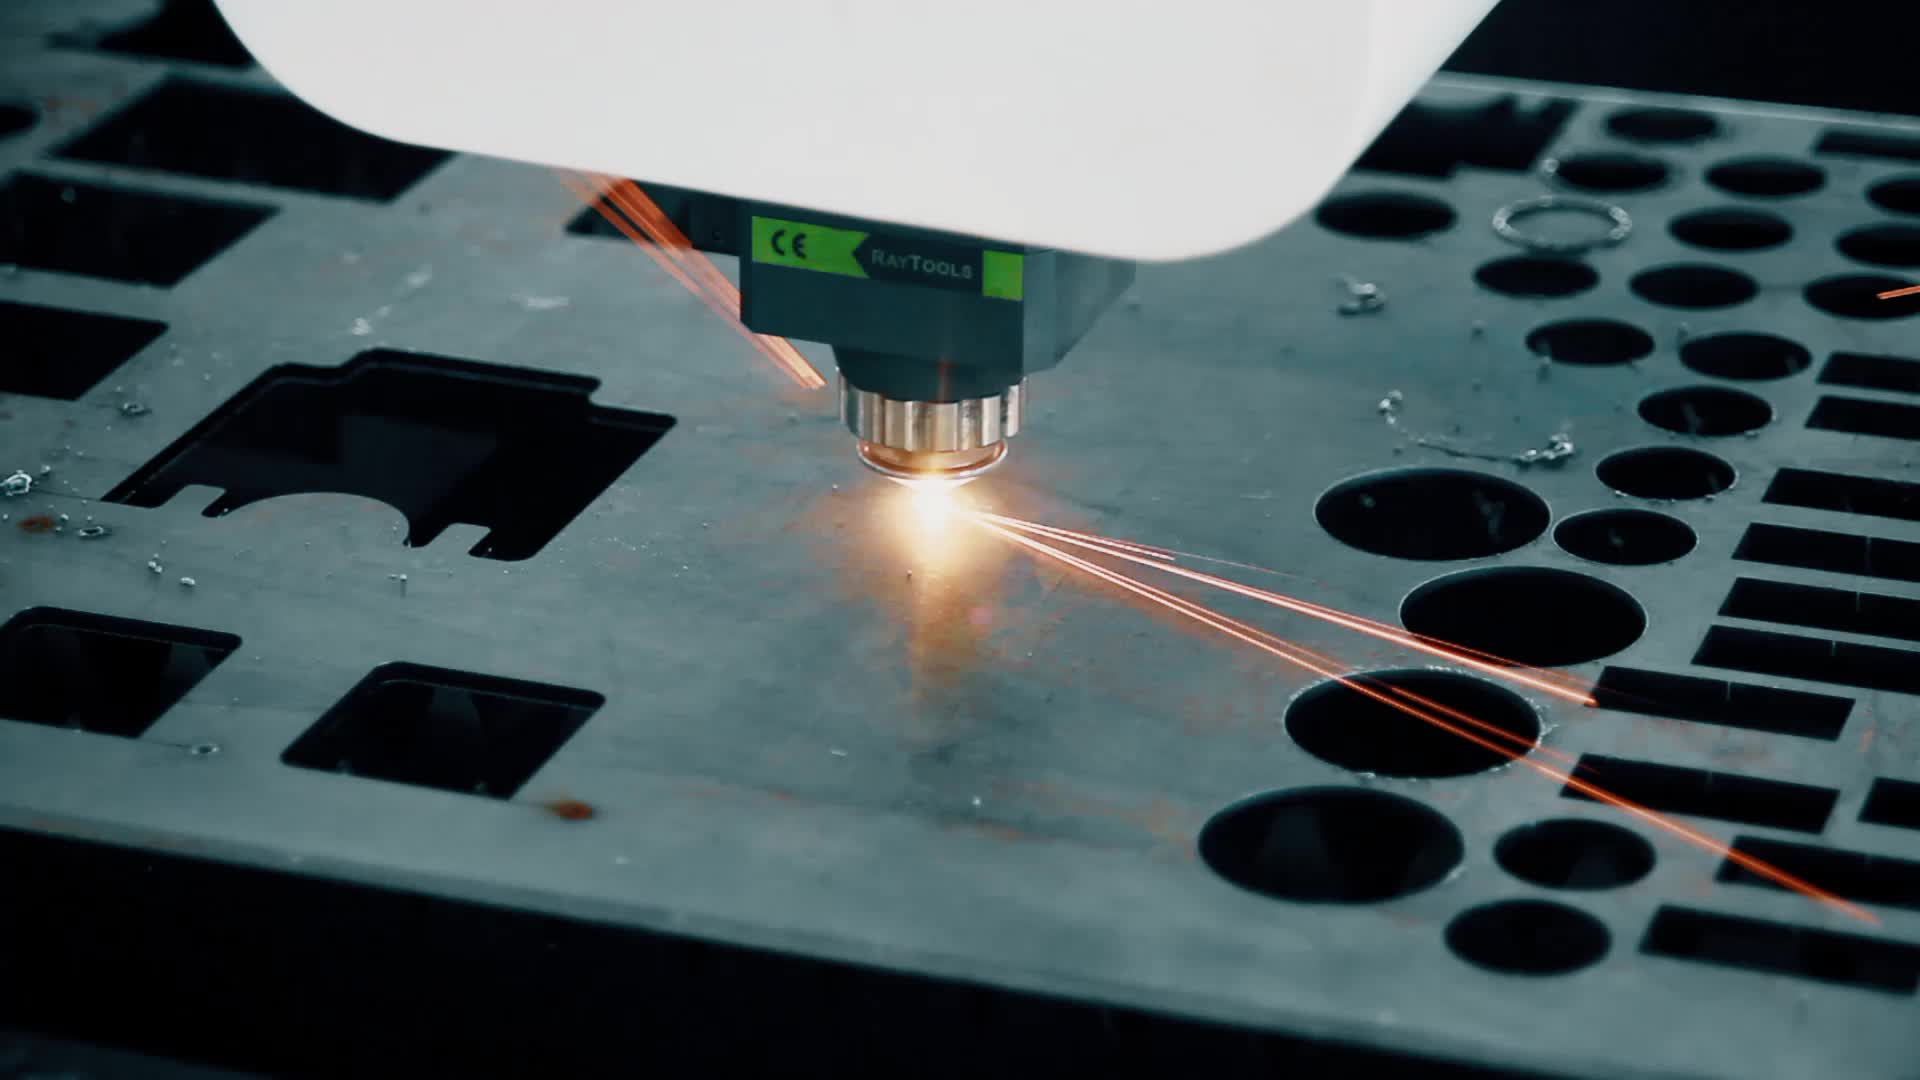 Cnc Fiber laser Stainless Steel Pipe Laser Cutting Machine For Pipe cutting